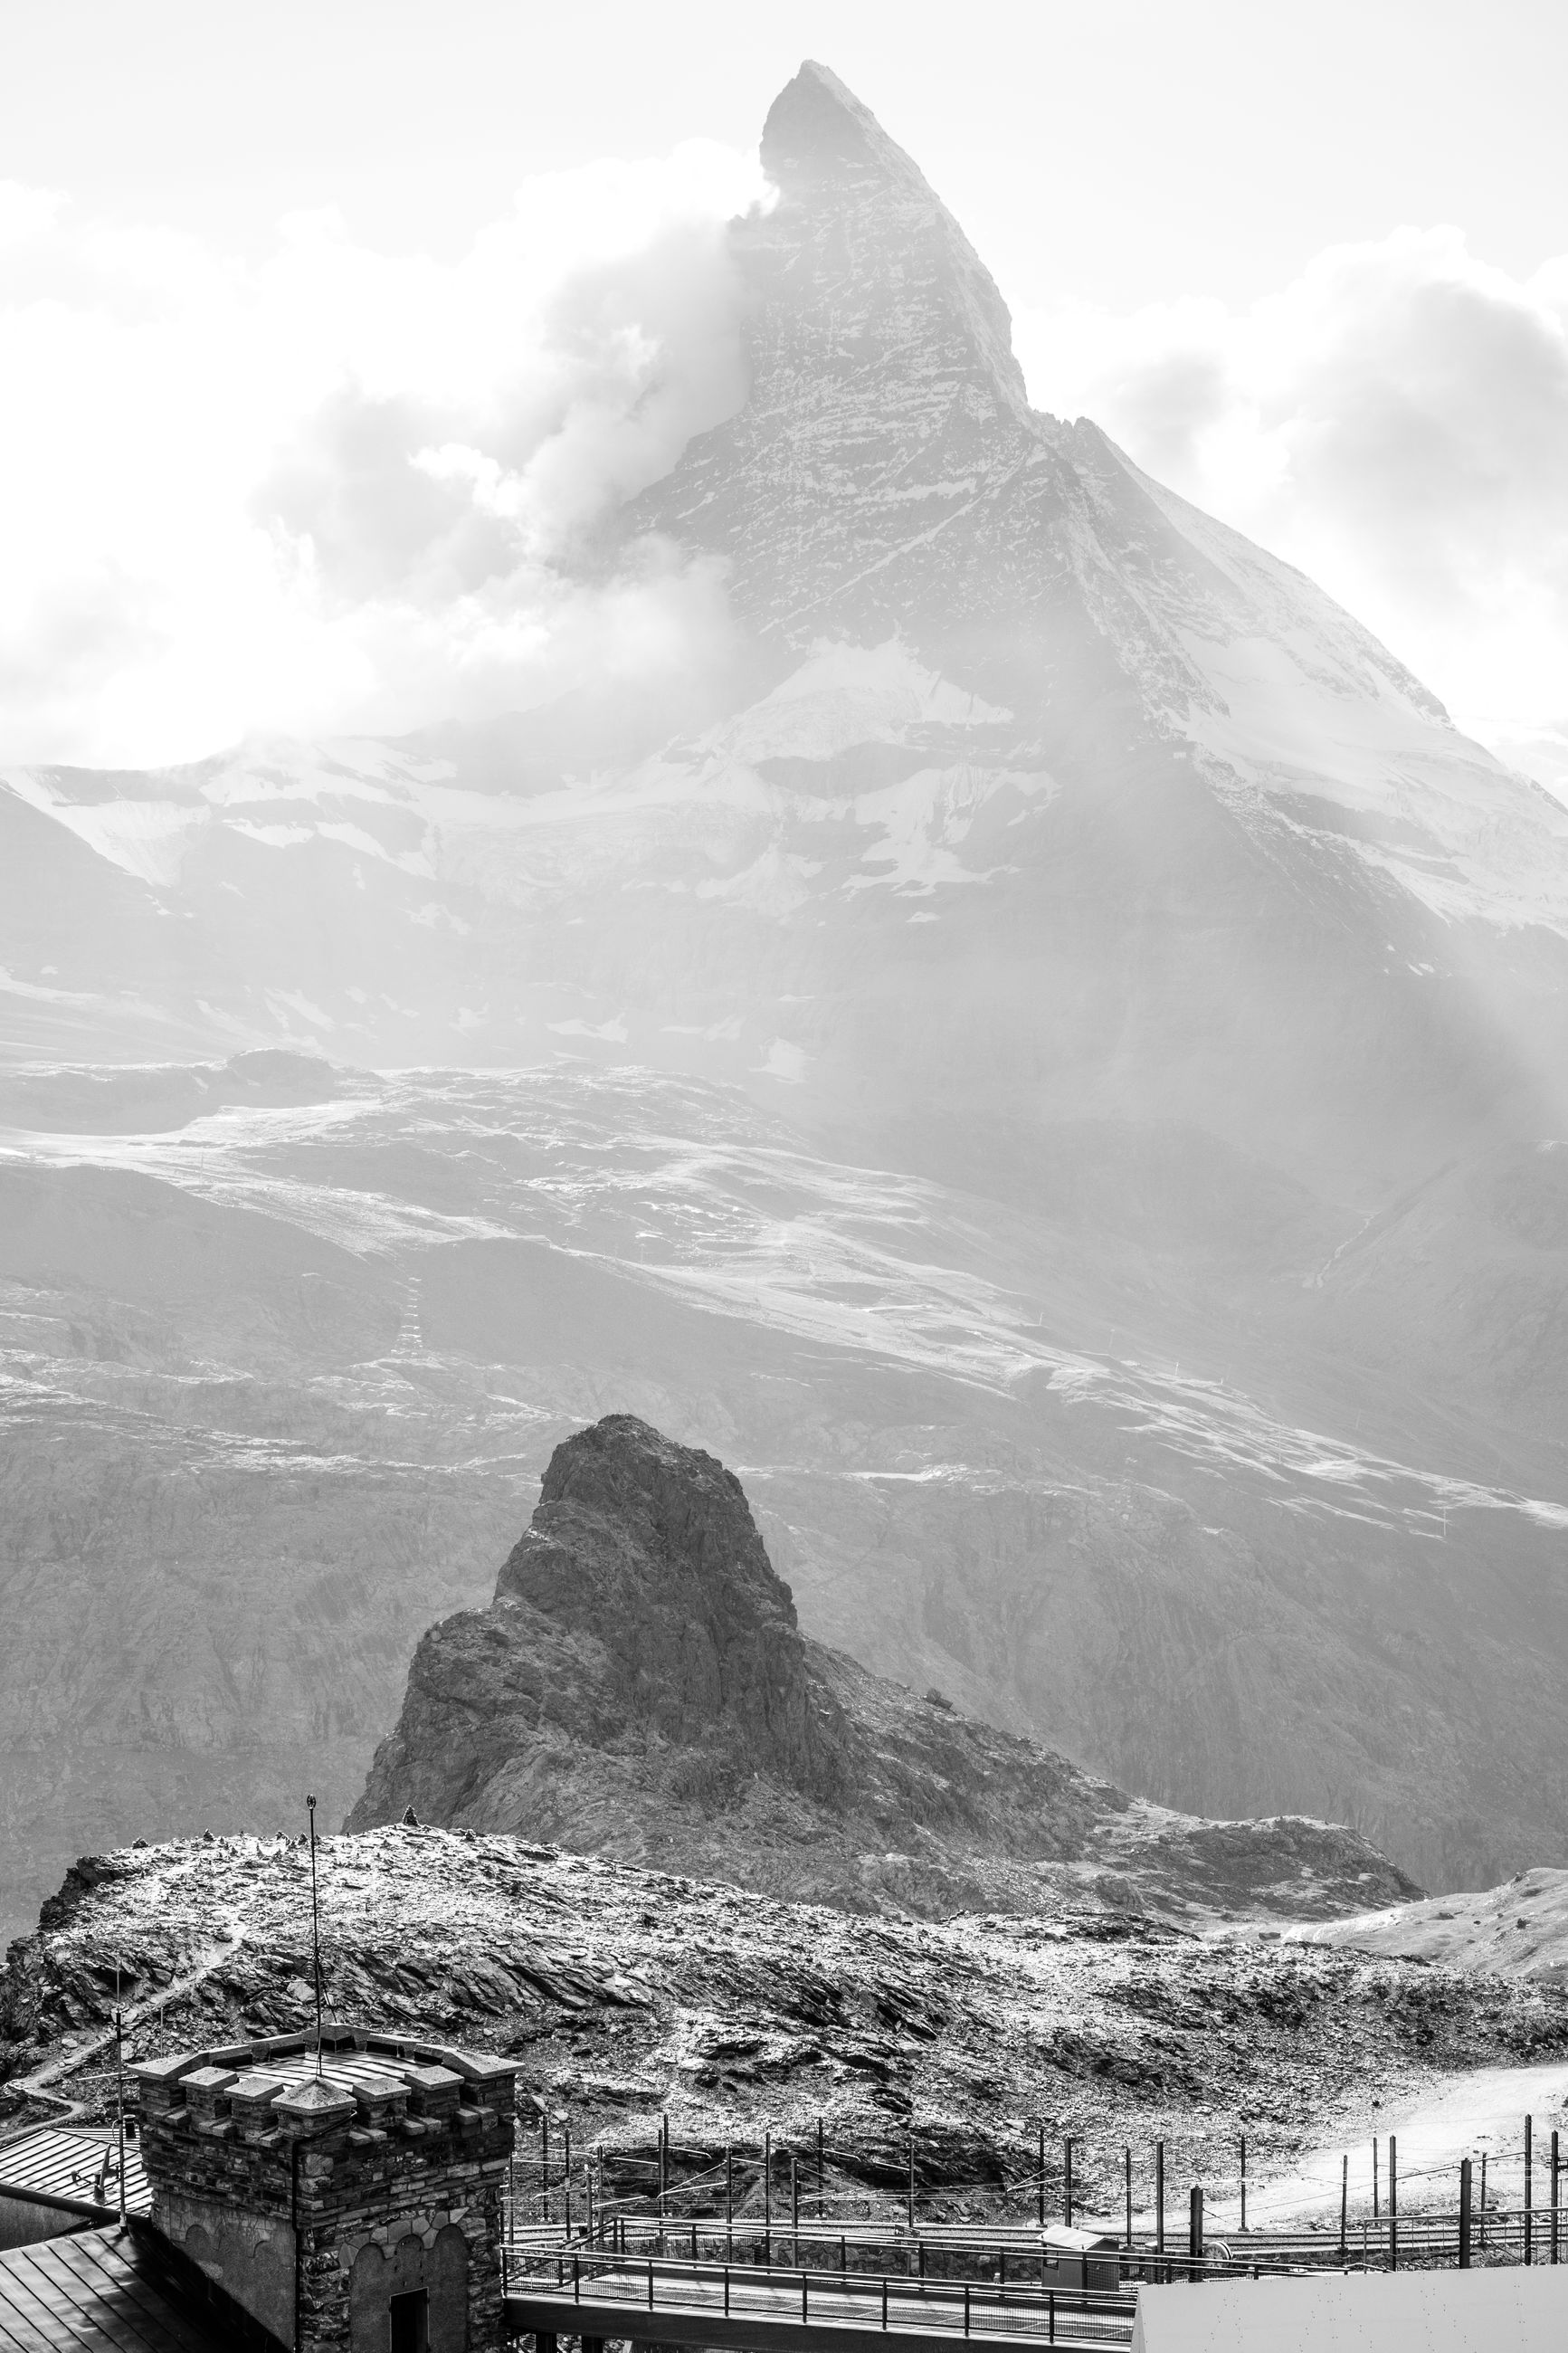 mountain, black and white, scenics - nature, monochrome photography, sky, beauty in nature, monochrome, environment, landscape, mountain range, nature, travel destinations, architecture, snow, water, land, travel, cloud, cold temperature, built structure, no people, tourism, sea, outdoors, building exterior, day, winter, building, tranquility, mountain peak, tranquil scene, snowcapped mountain, non-urban scene, white